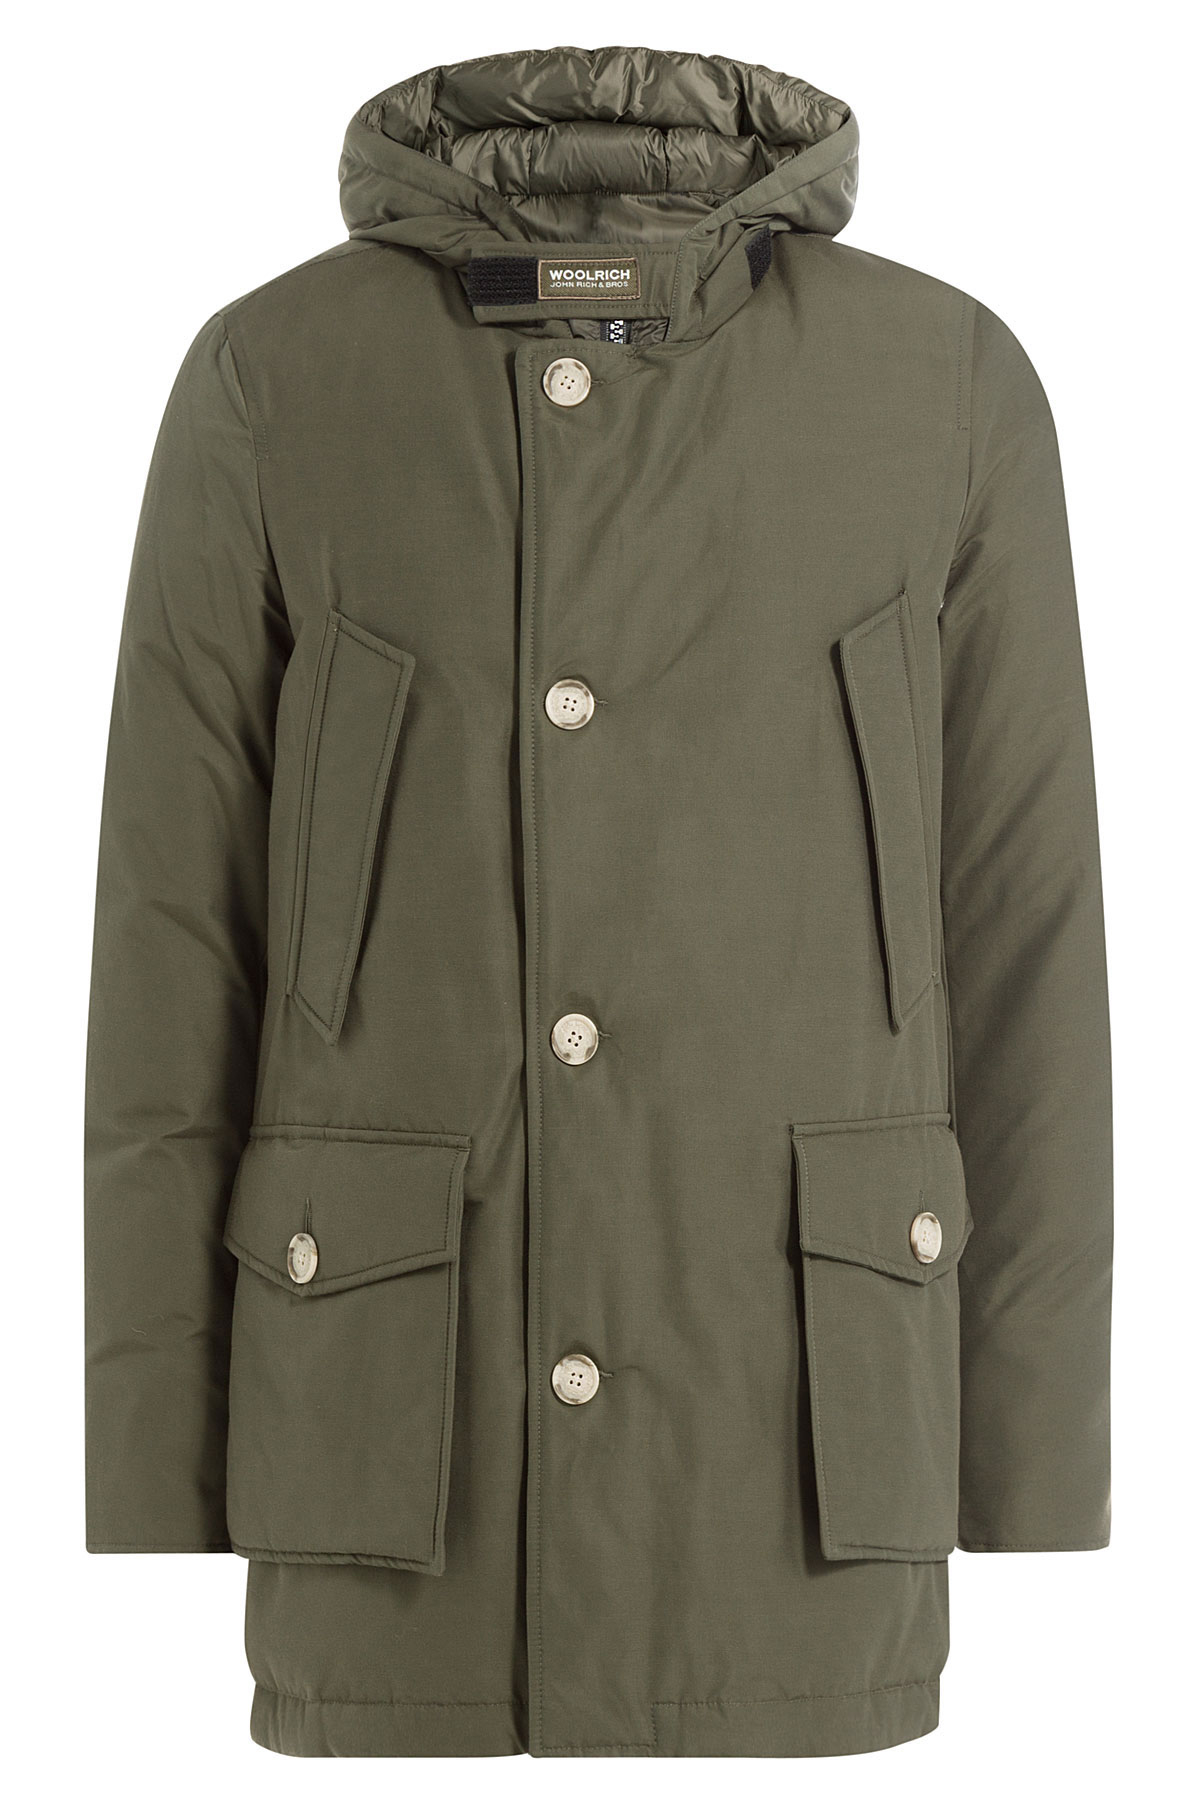 woolrich down arctic parka green in green for men lyst. Black Bedroom Furniture Sets. Home Design Ideas